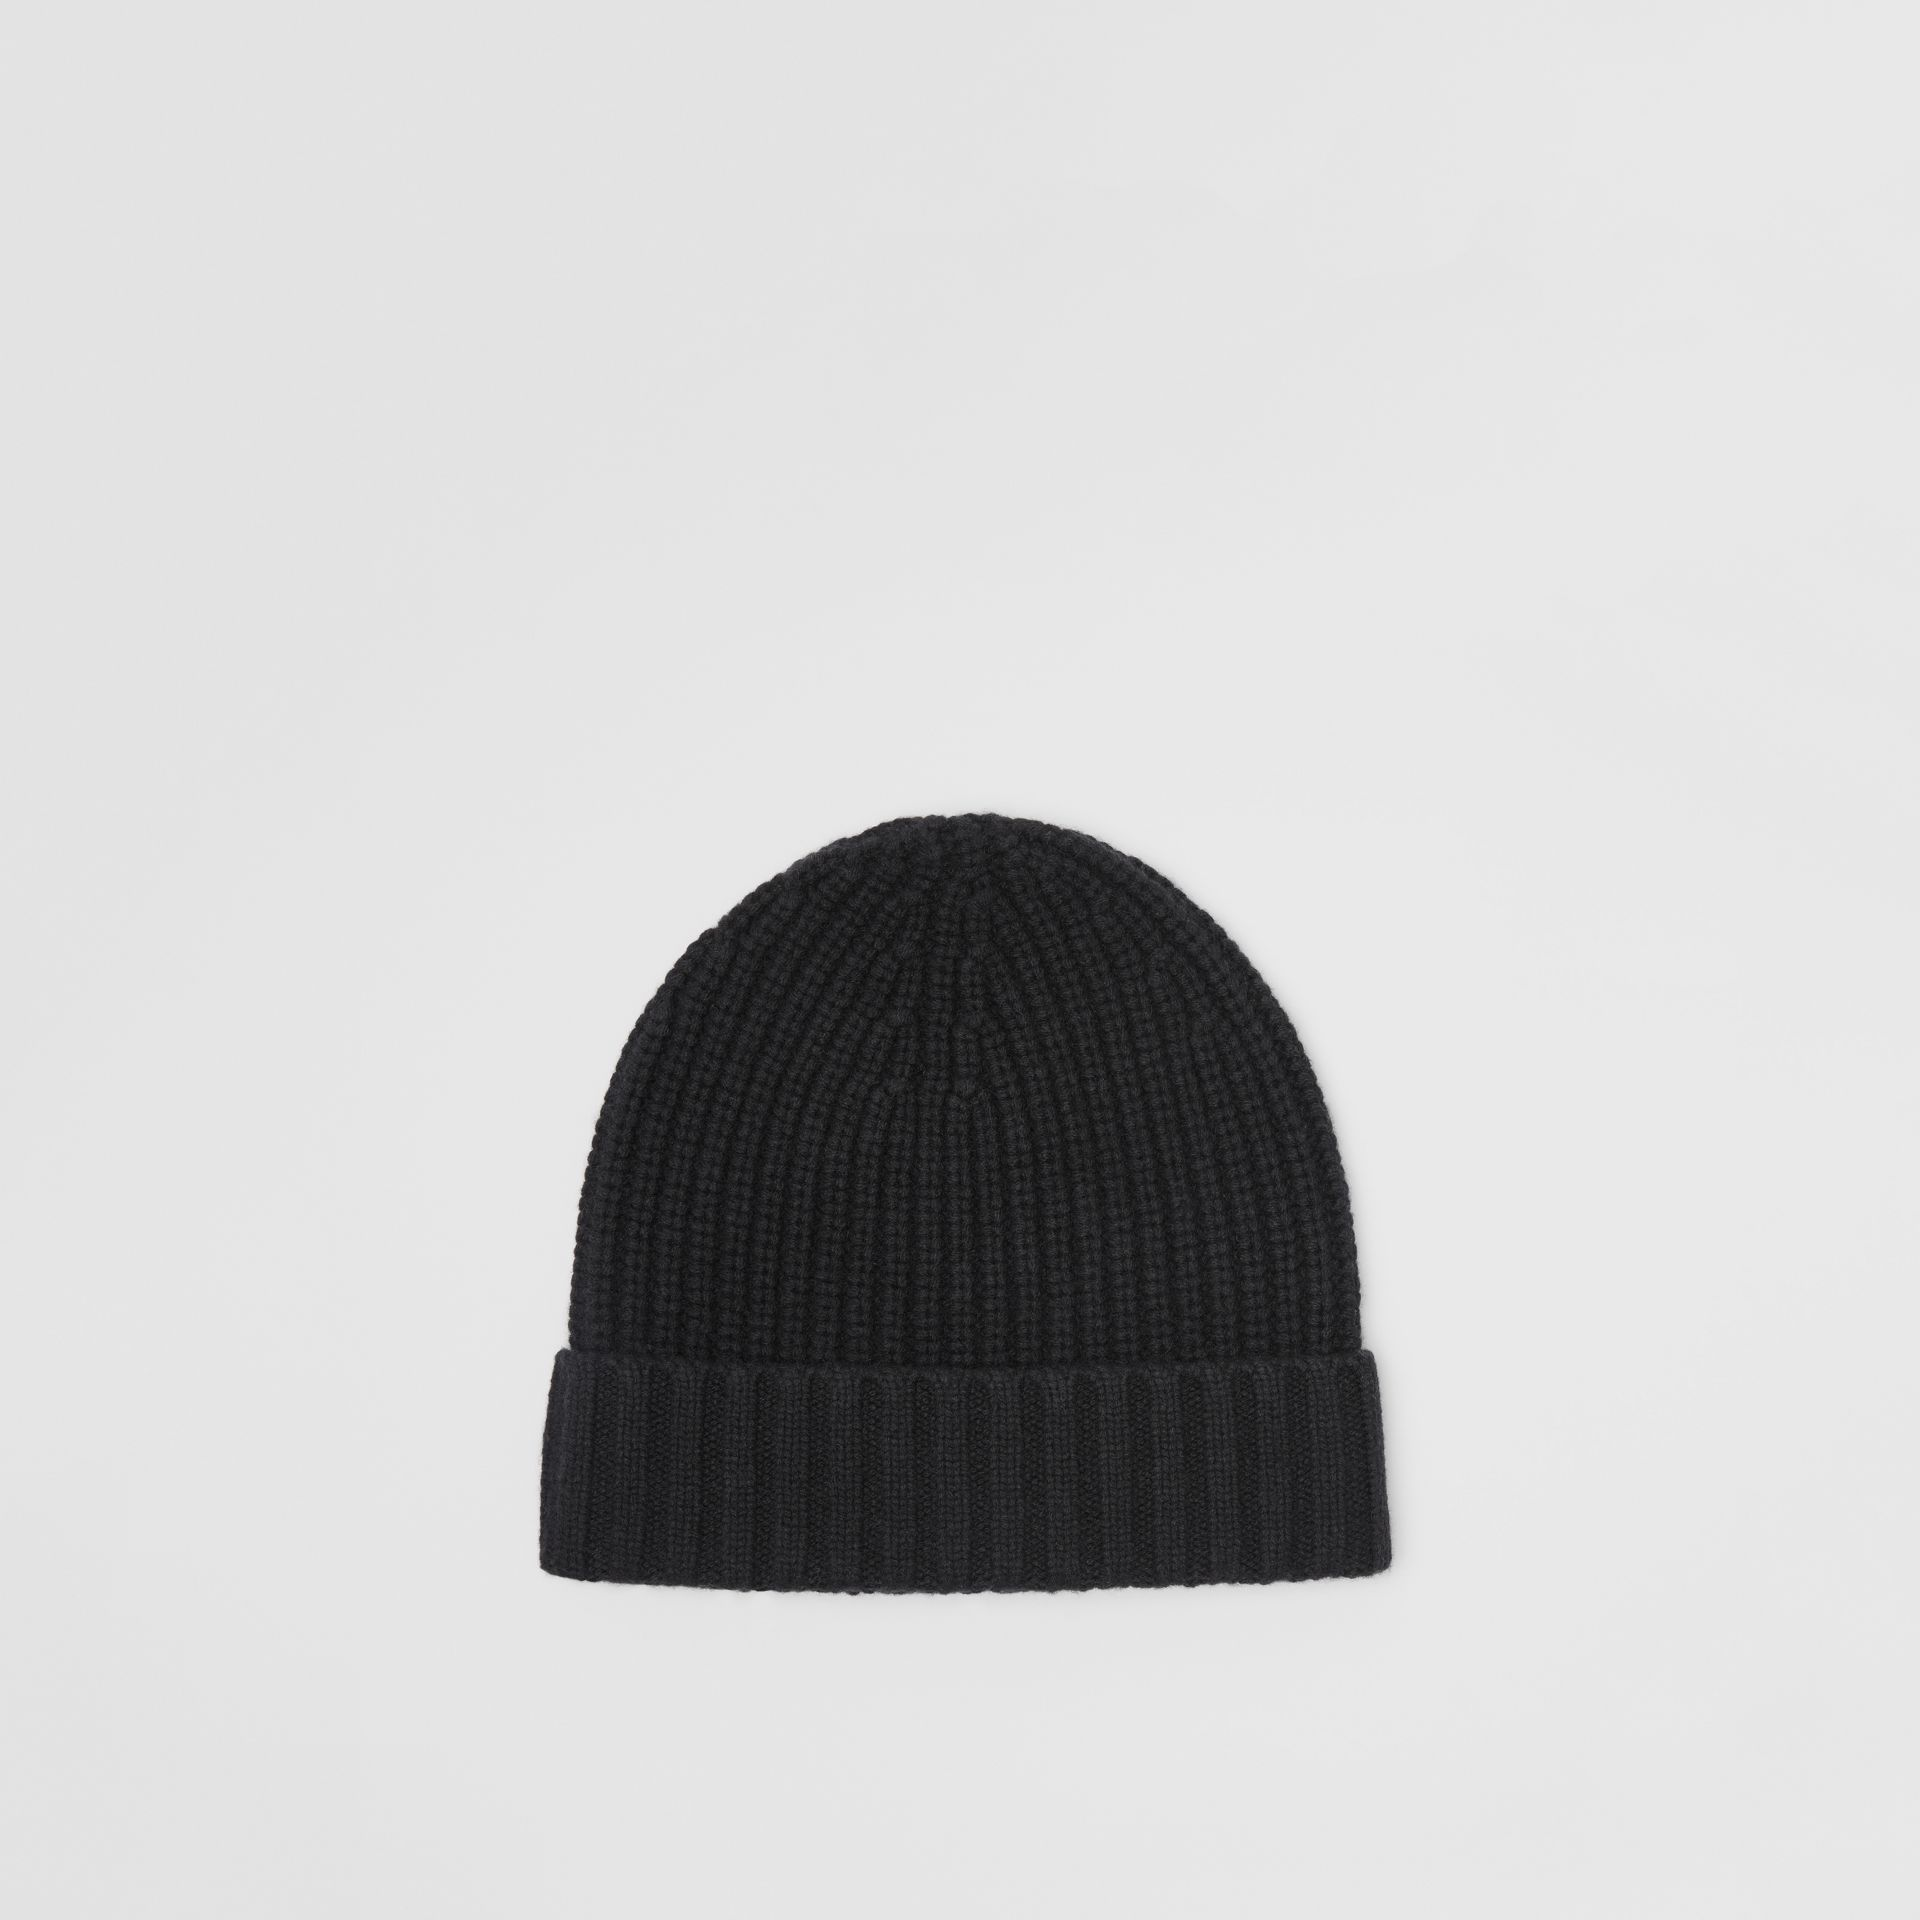 Embroidered Crest Rib Knit Wool Cashmere Beanie in Black | Burberry Australia - gallery image 4